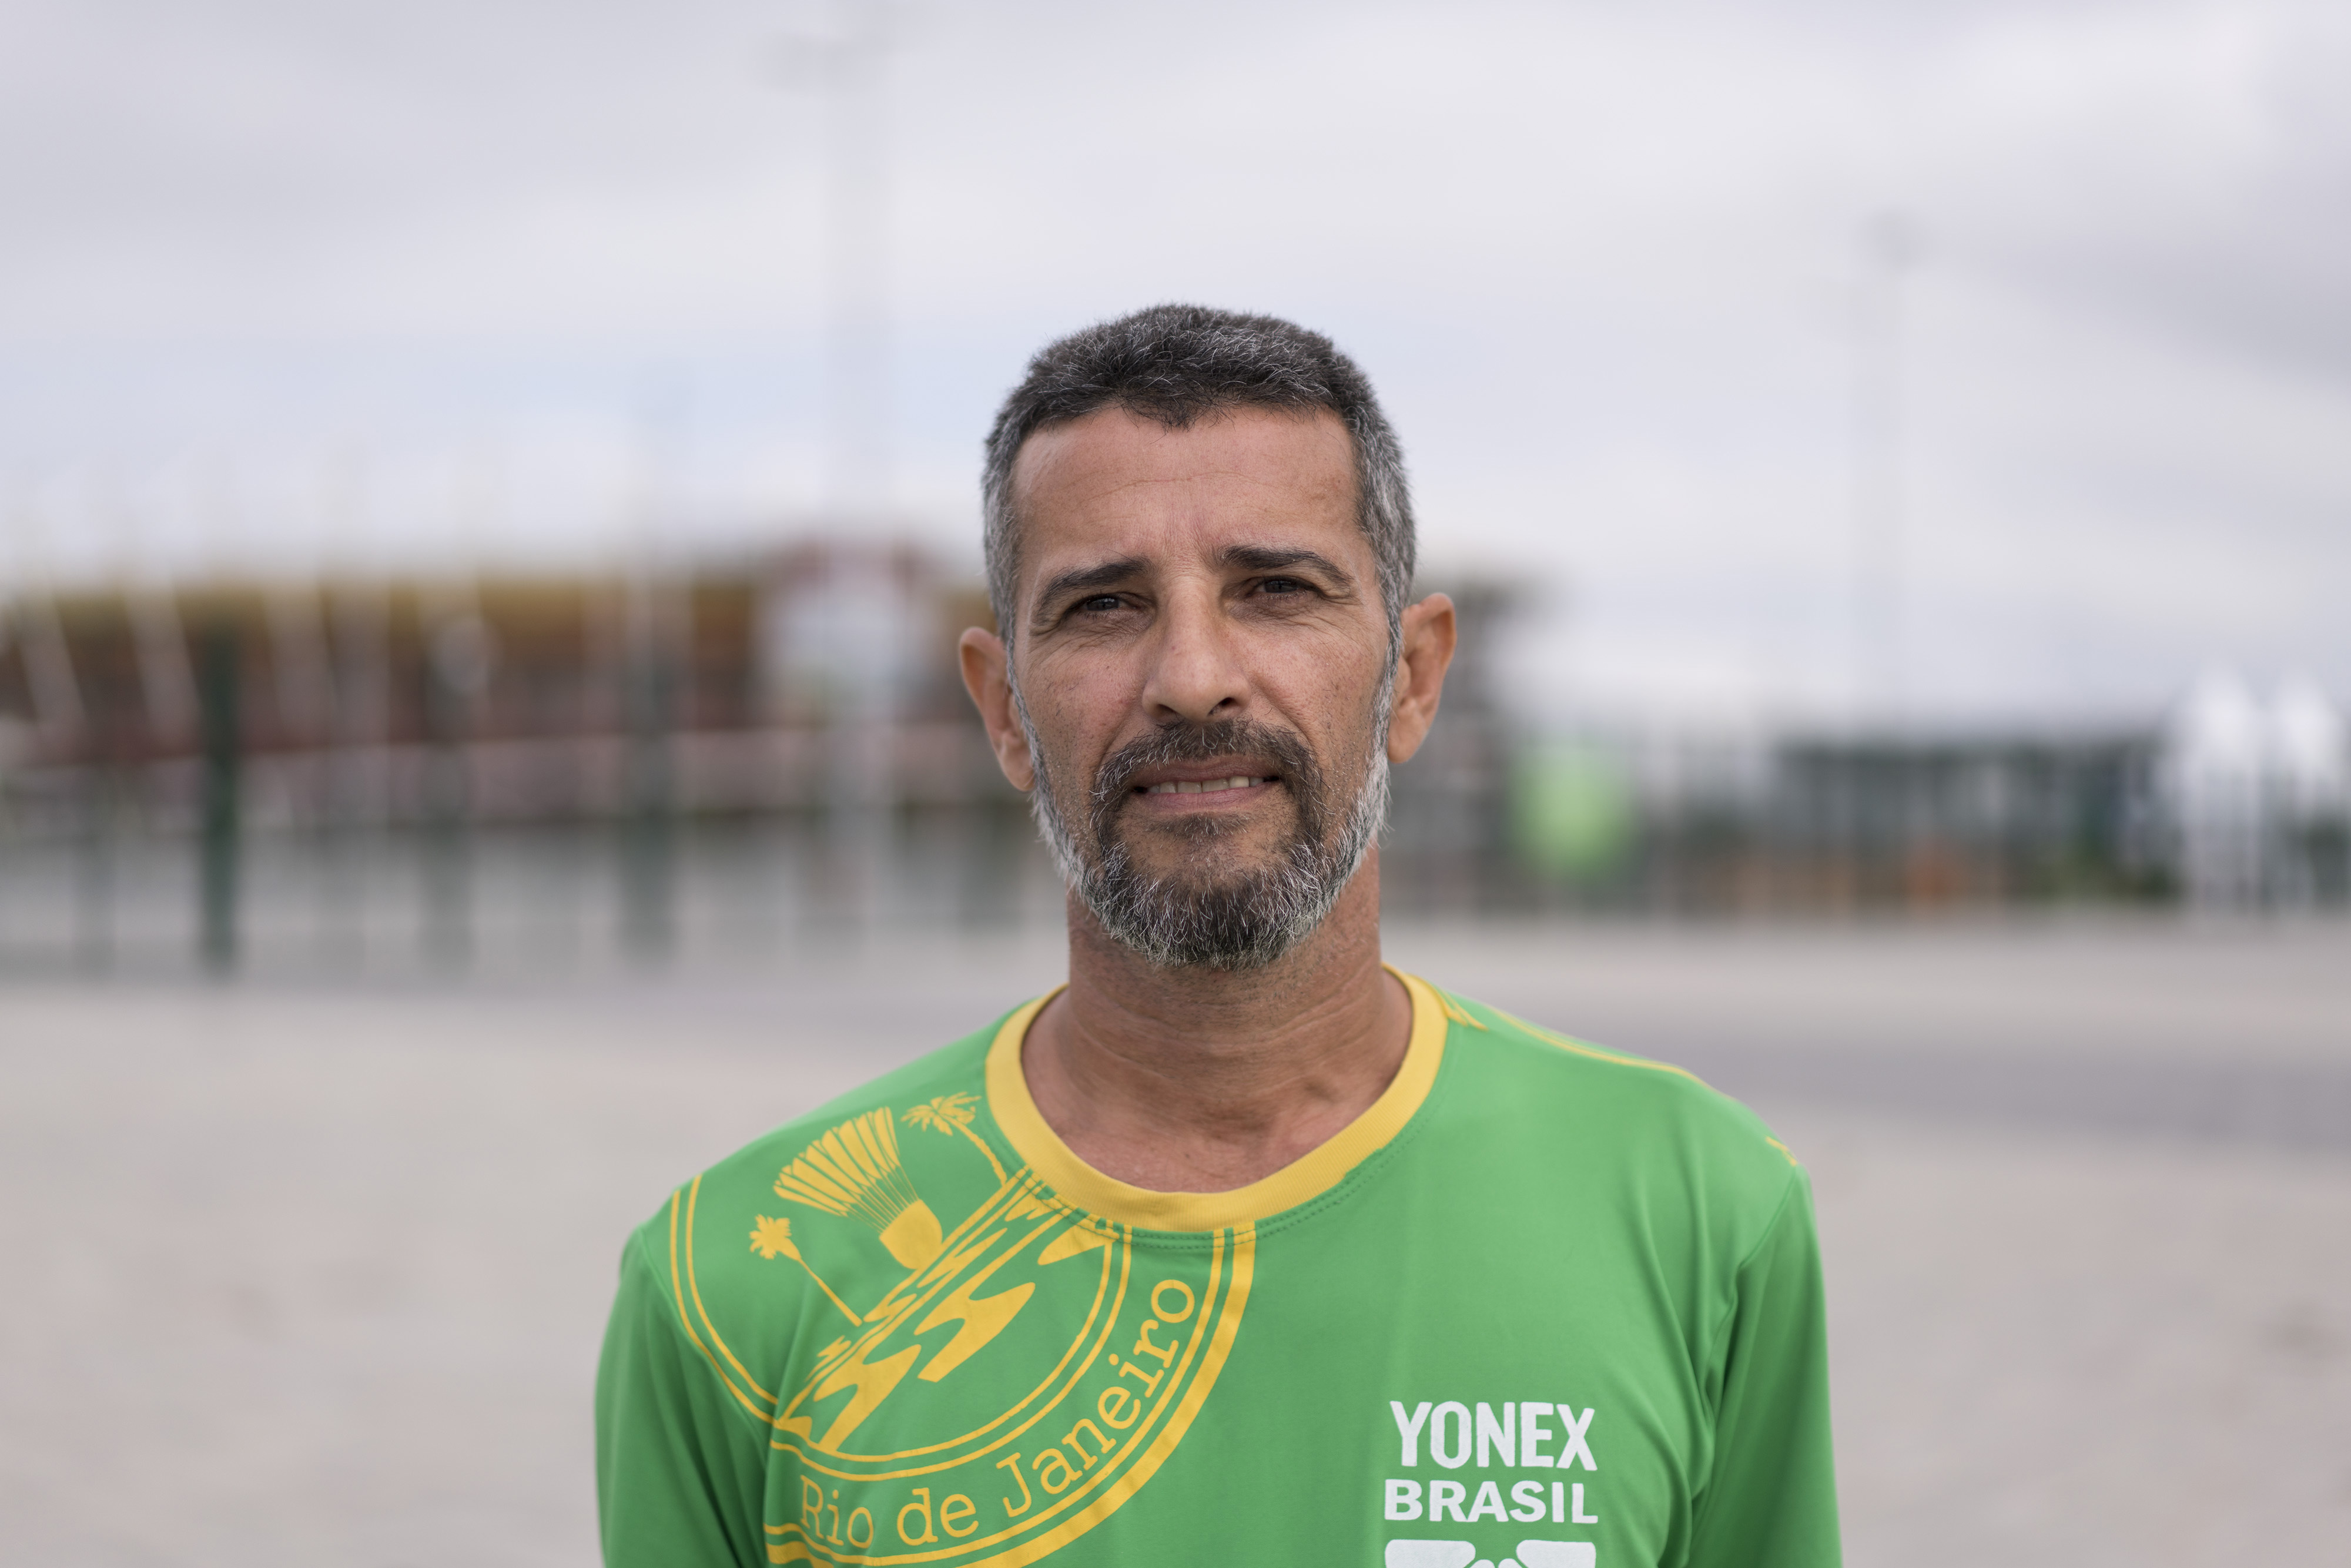 In this June 3, 2016 photo, Marco Araujo, badminton coach of the Rio de Janeiro state badminton federation, poses for a photo in Rio de Janeiro, Brazil. The Olympics are bringing an incomparable legacy, in regard to the changes in the city's infrastructur